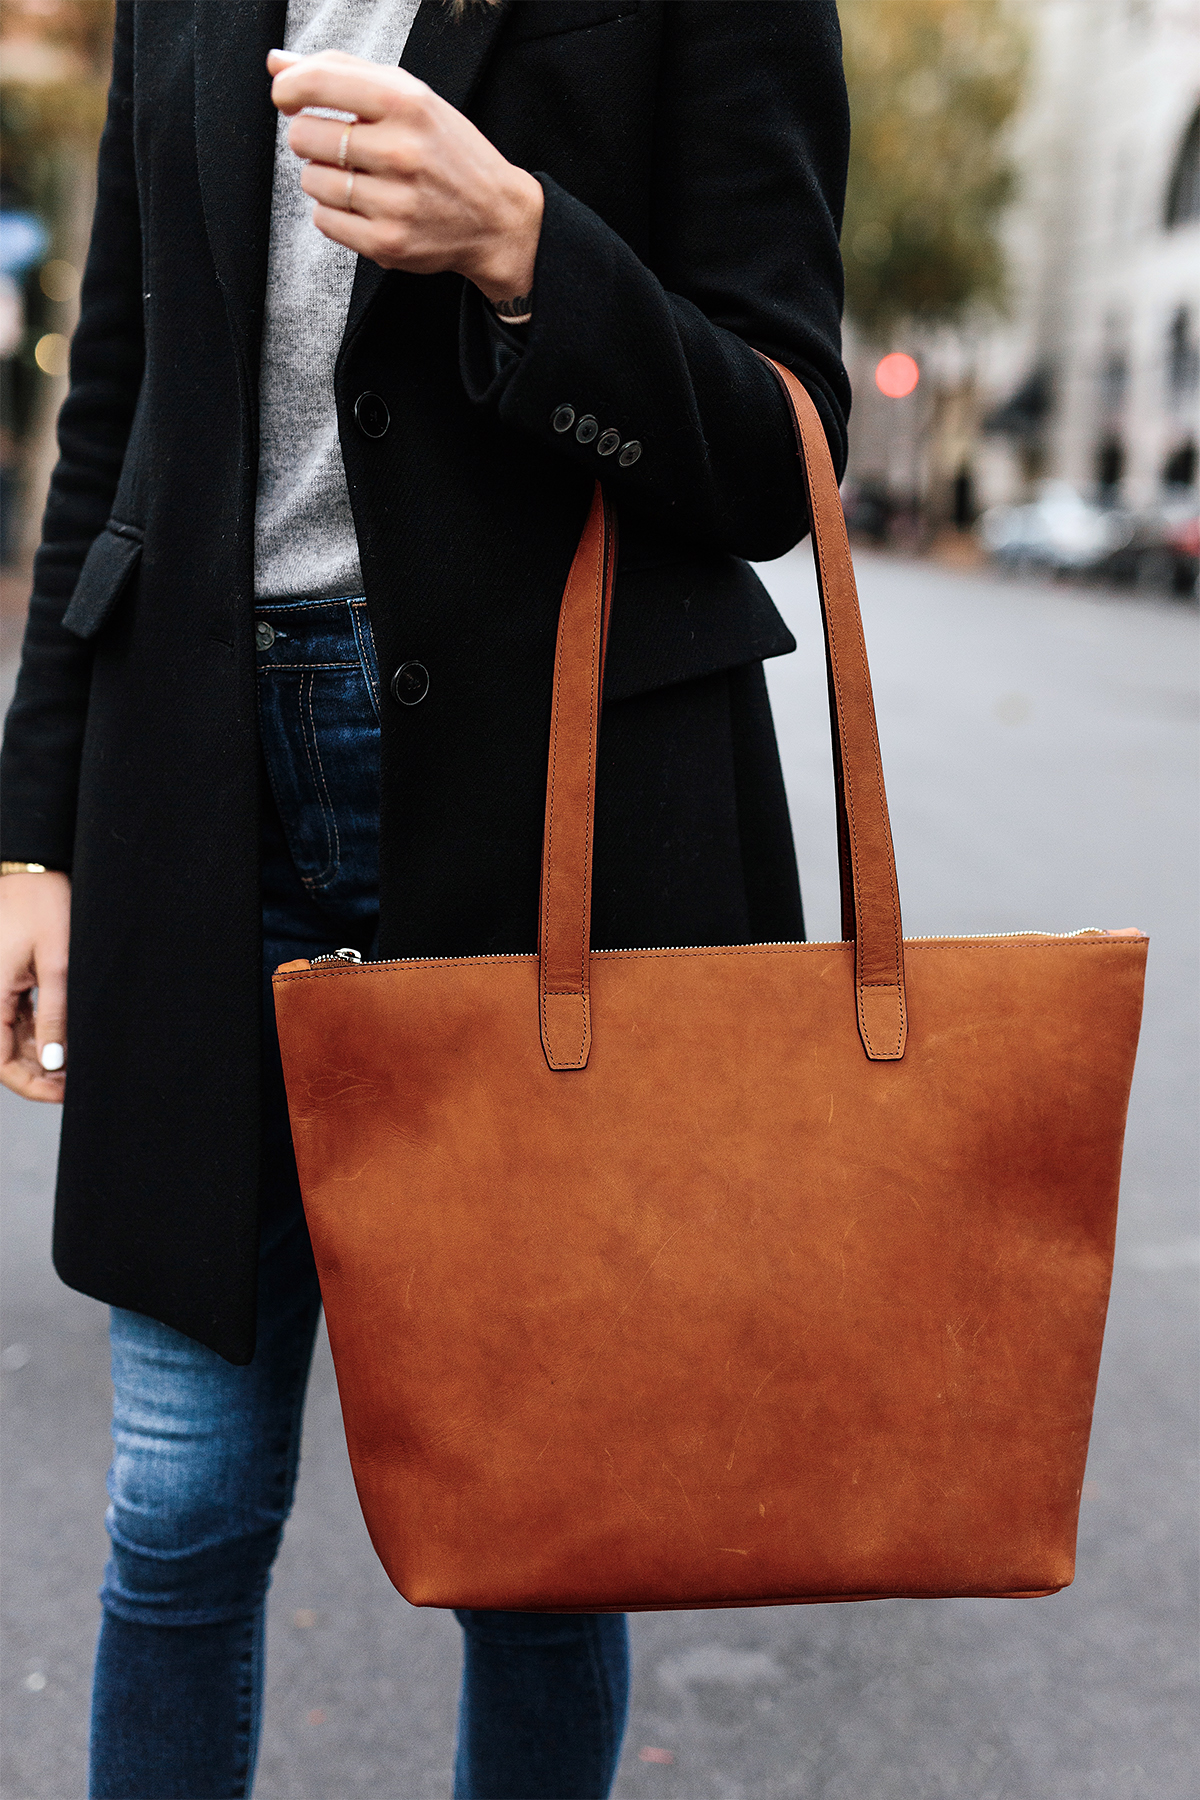 Woman Wearing SLATE Cognac Tote Black Wool Coat Grey Sweater Denim Skinny Jeans Outfit Fashion Jackson San Diego Fashion Blogger Street Style